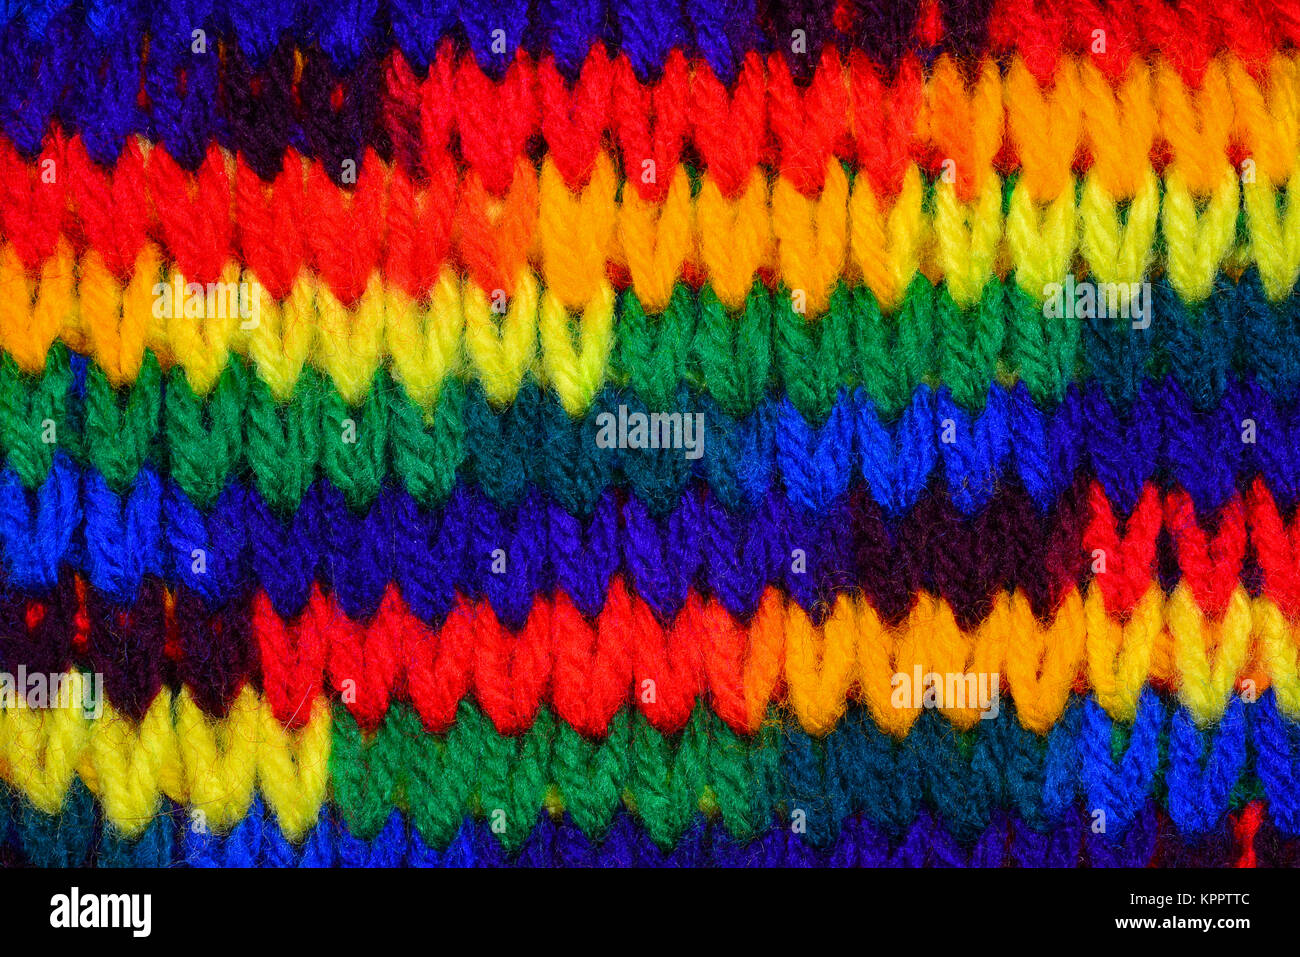 Bold bright primary colorful knitting stitch background. - Stock Image